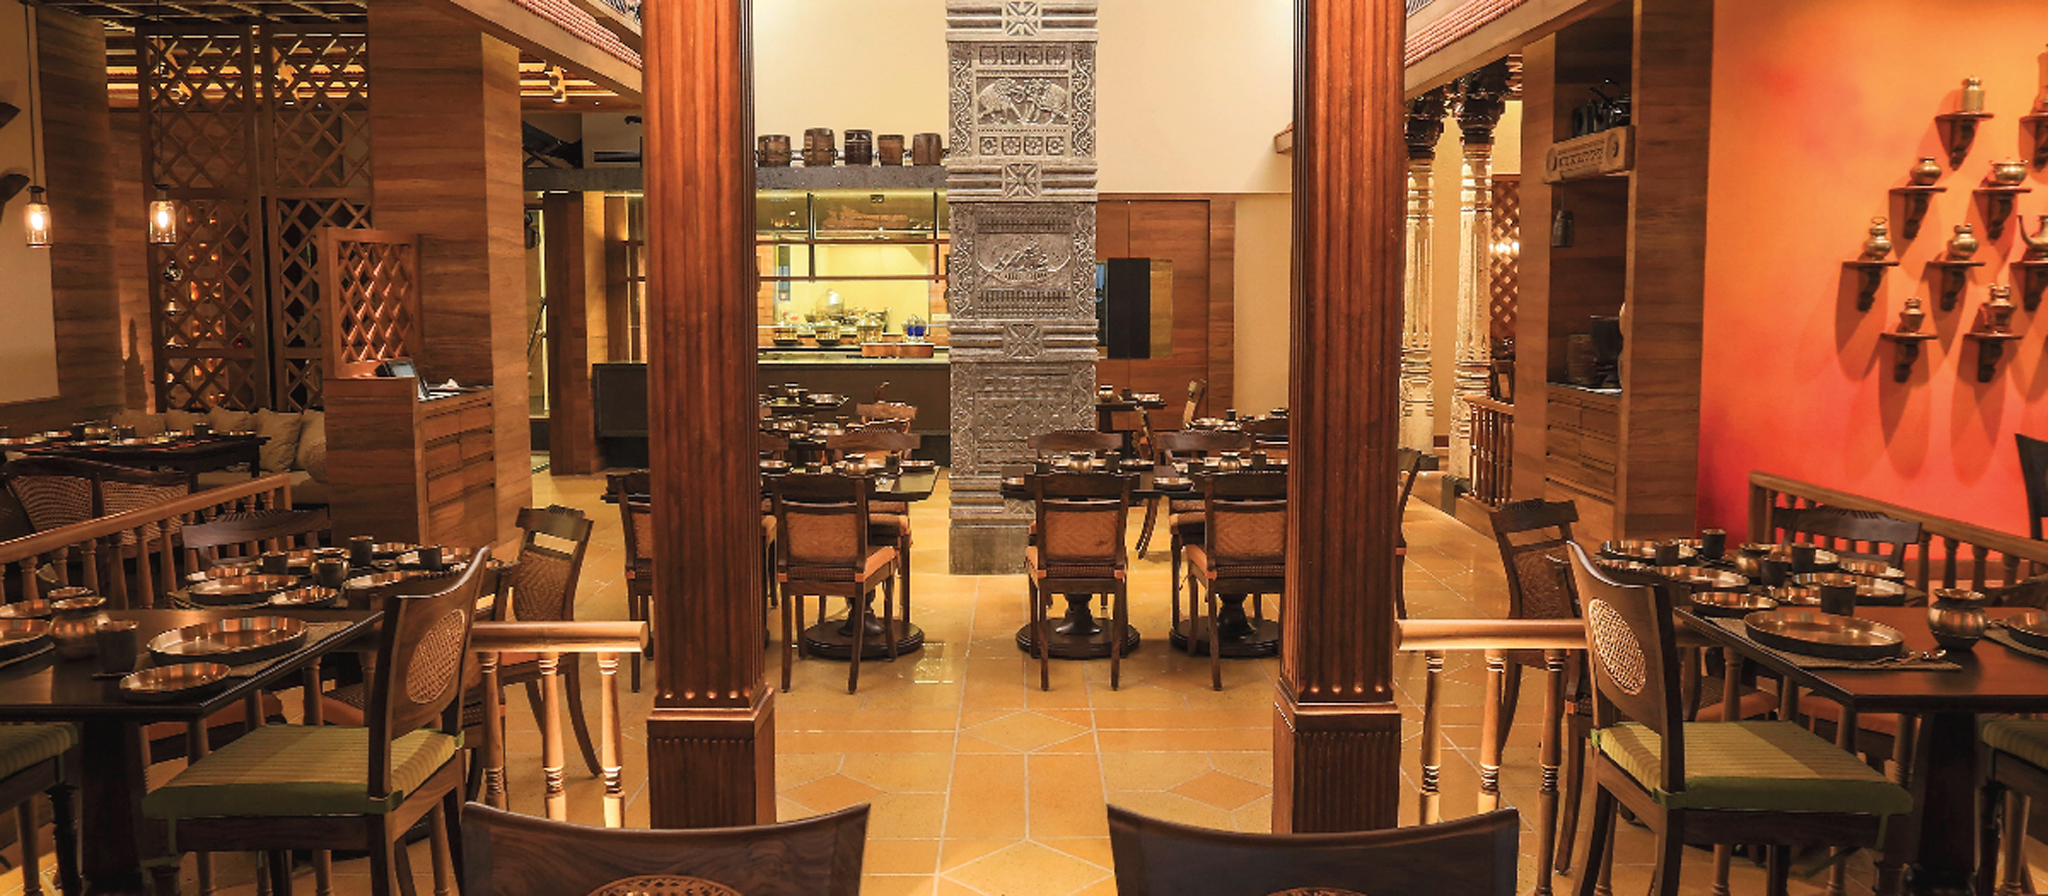 The Konkan Cafe at Vivanta President, Mumbai